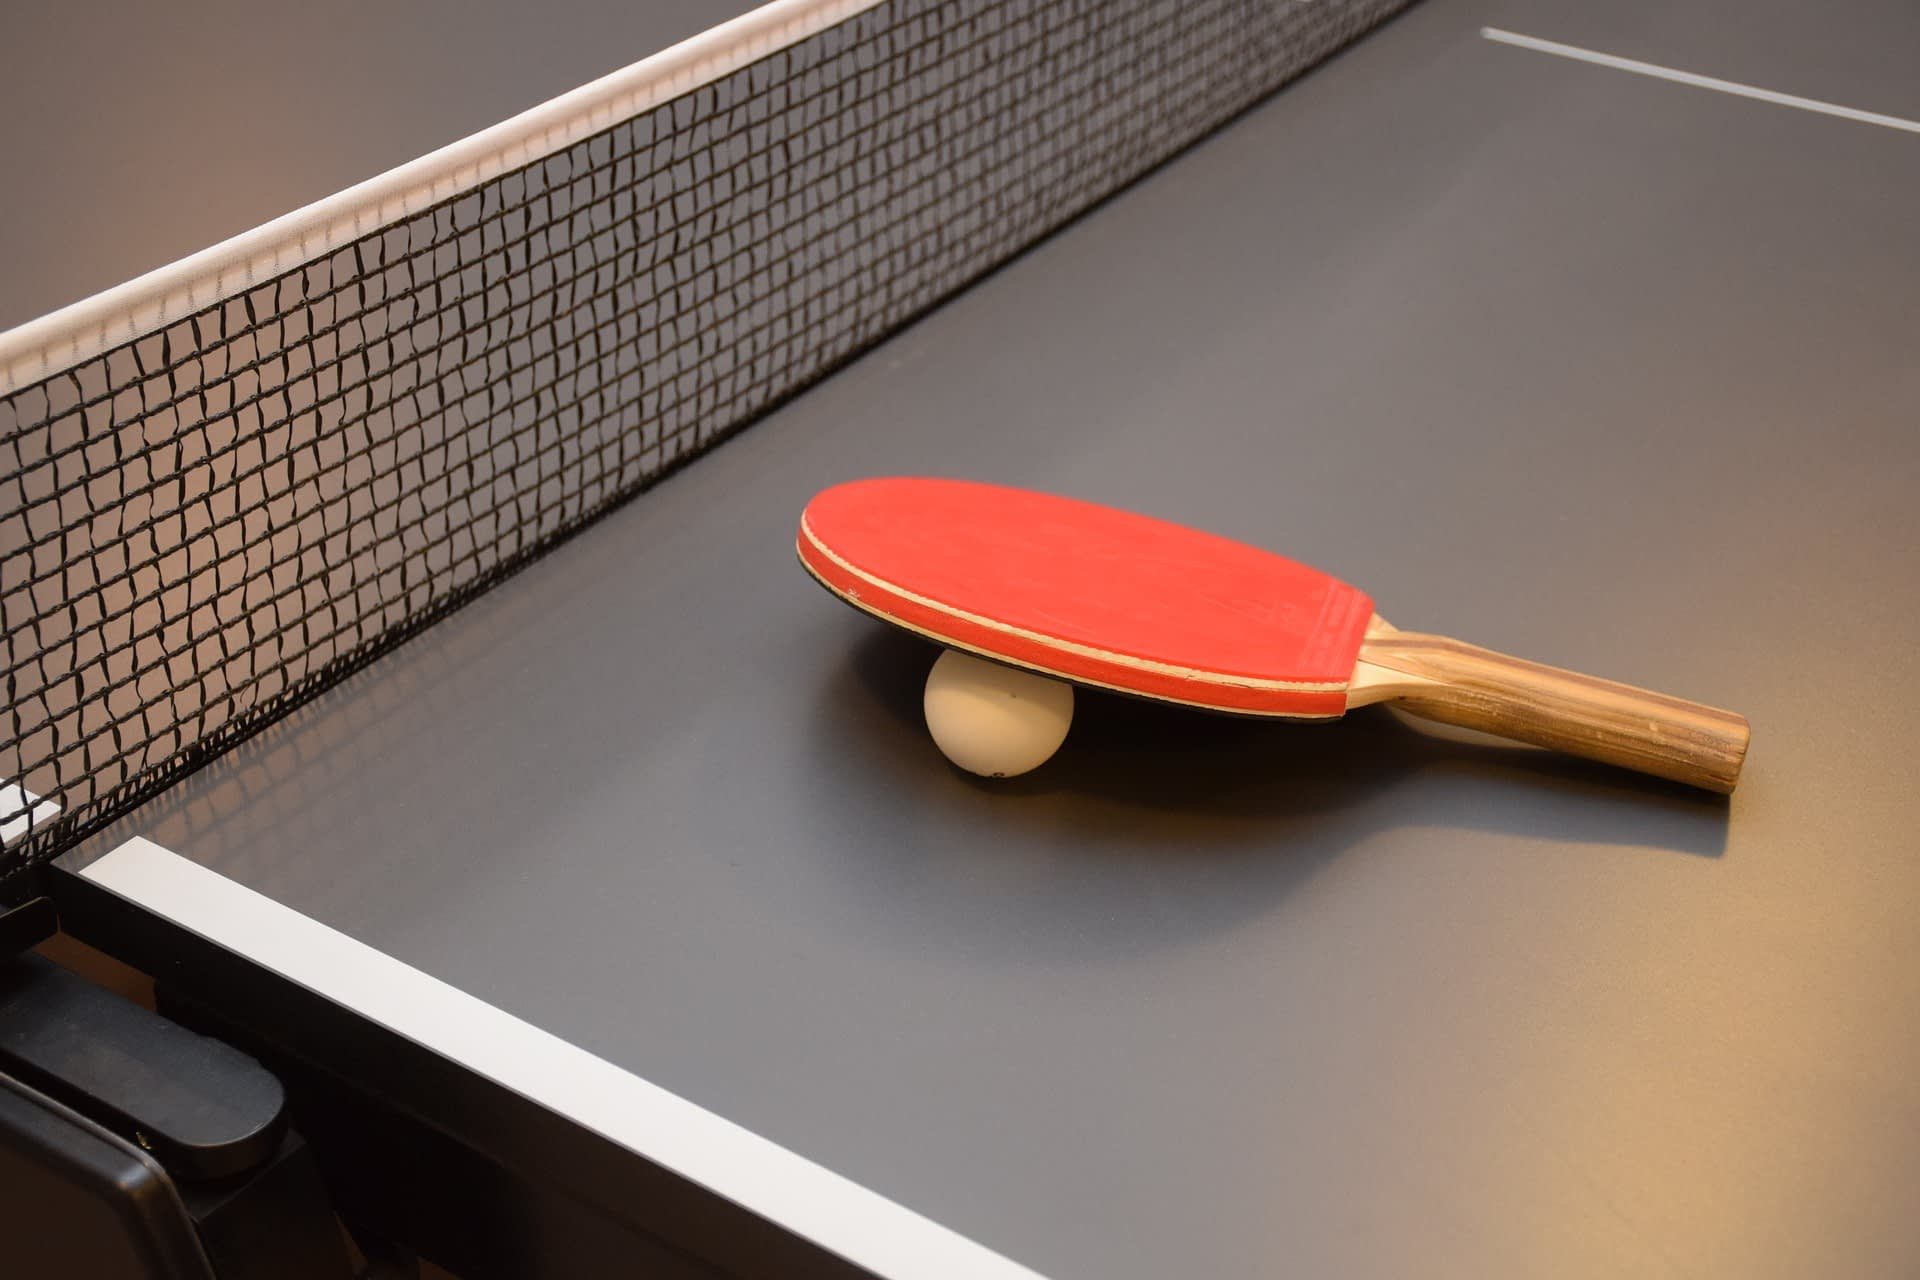 Benefits of Playing Ping Pong